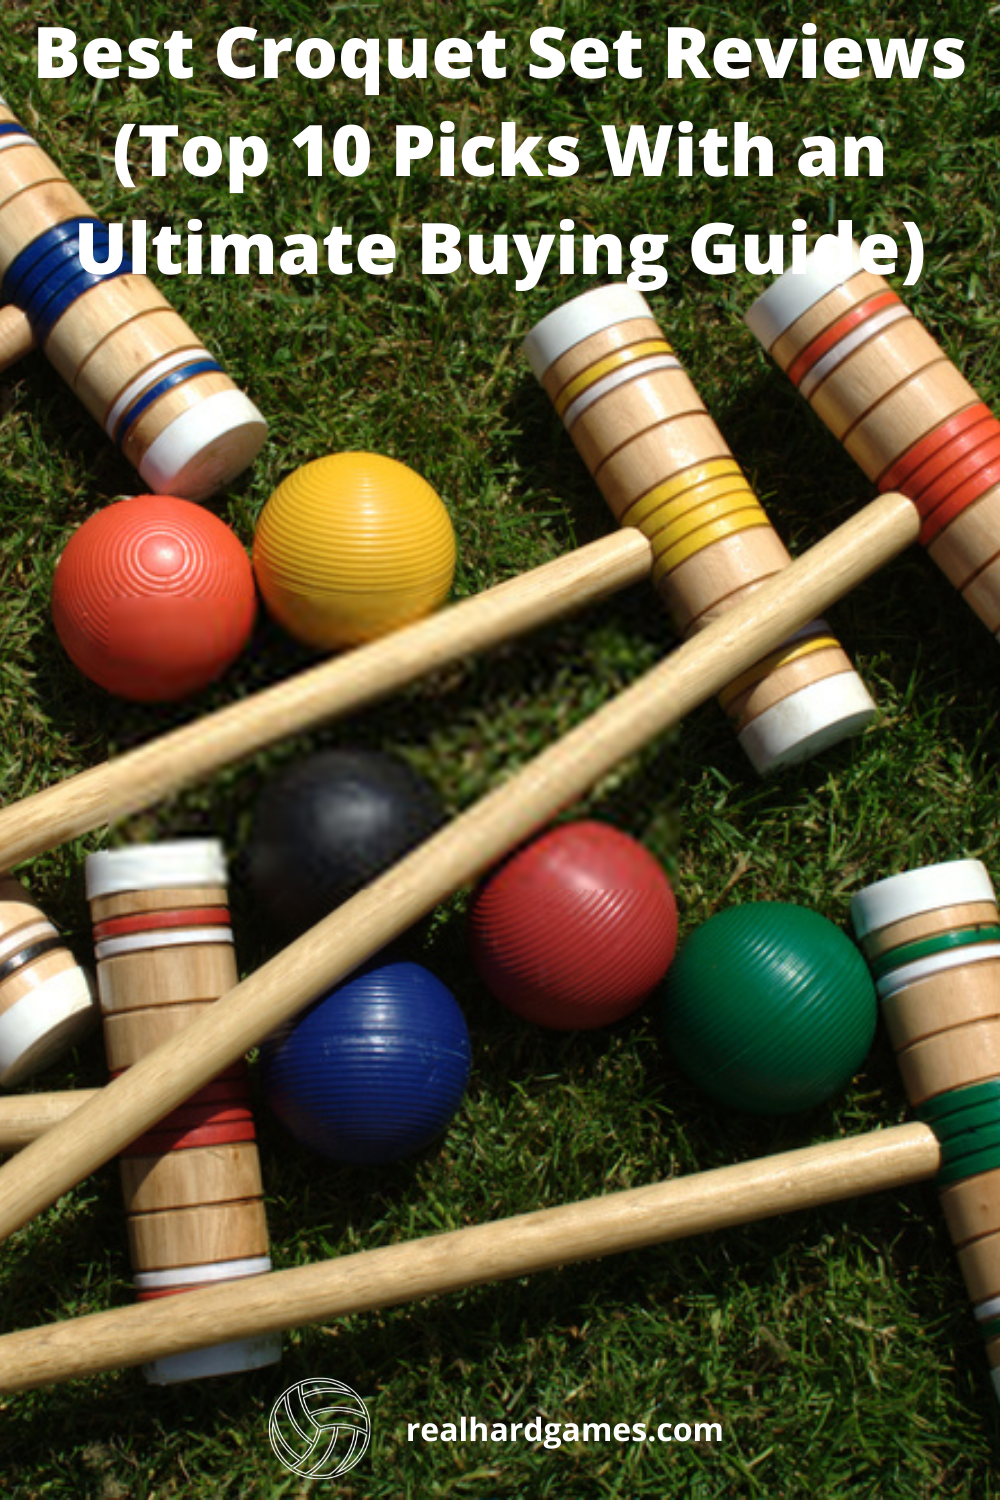 Best Croquet Set Reviews Top 10 Picks With An Ultimate Buying Guide Croquet Hard Game Could Play